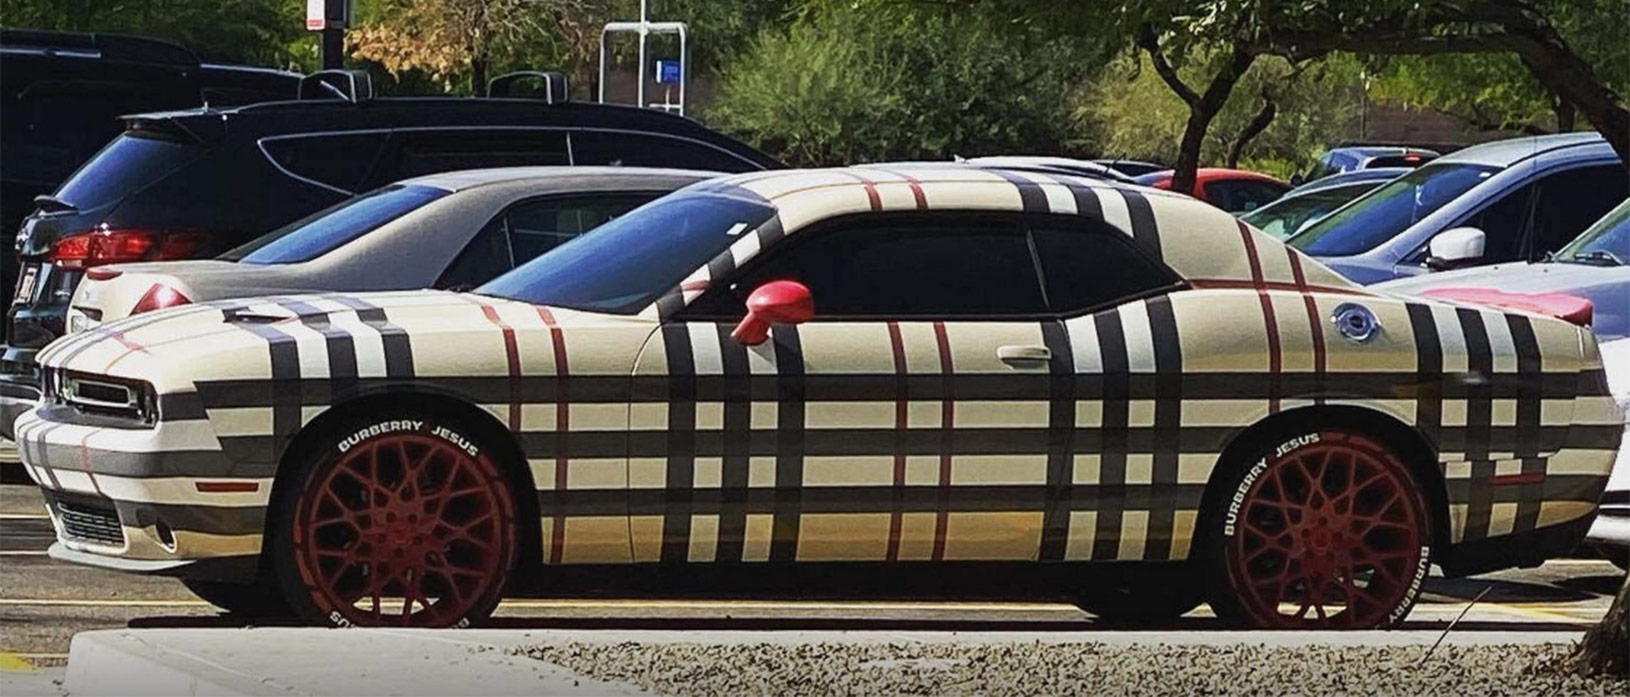 burberry patterned dodge challenger